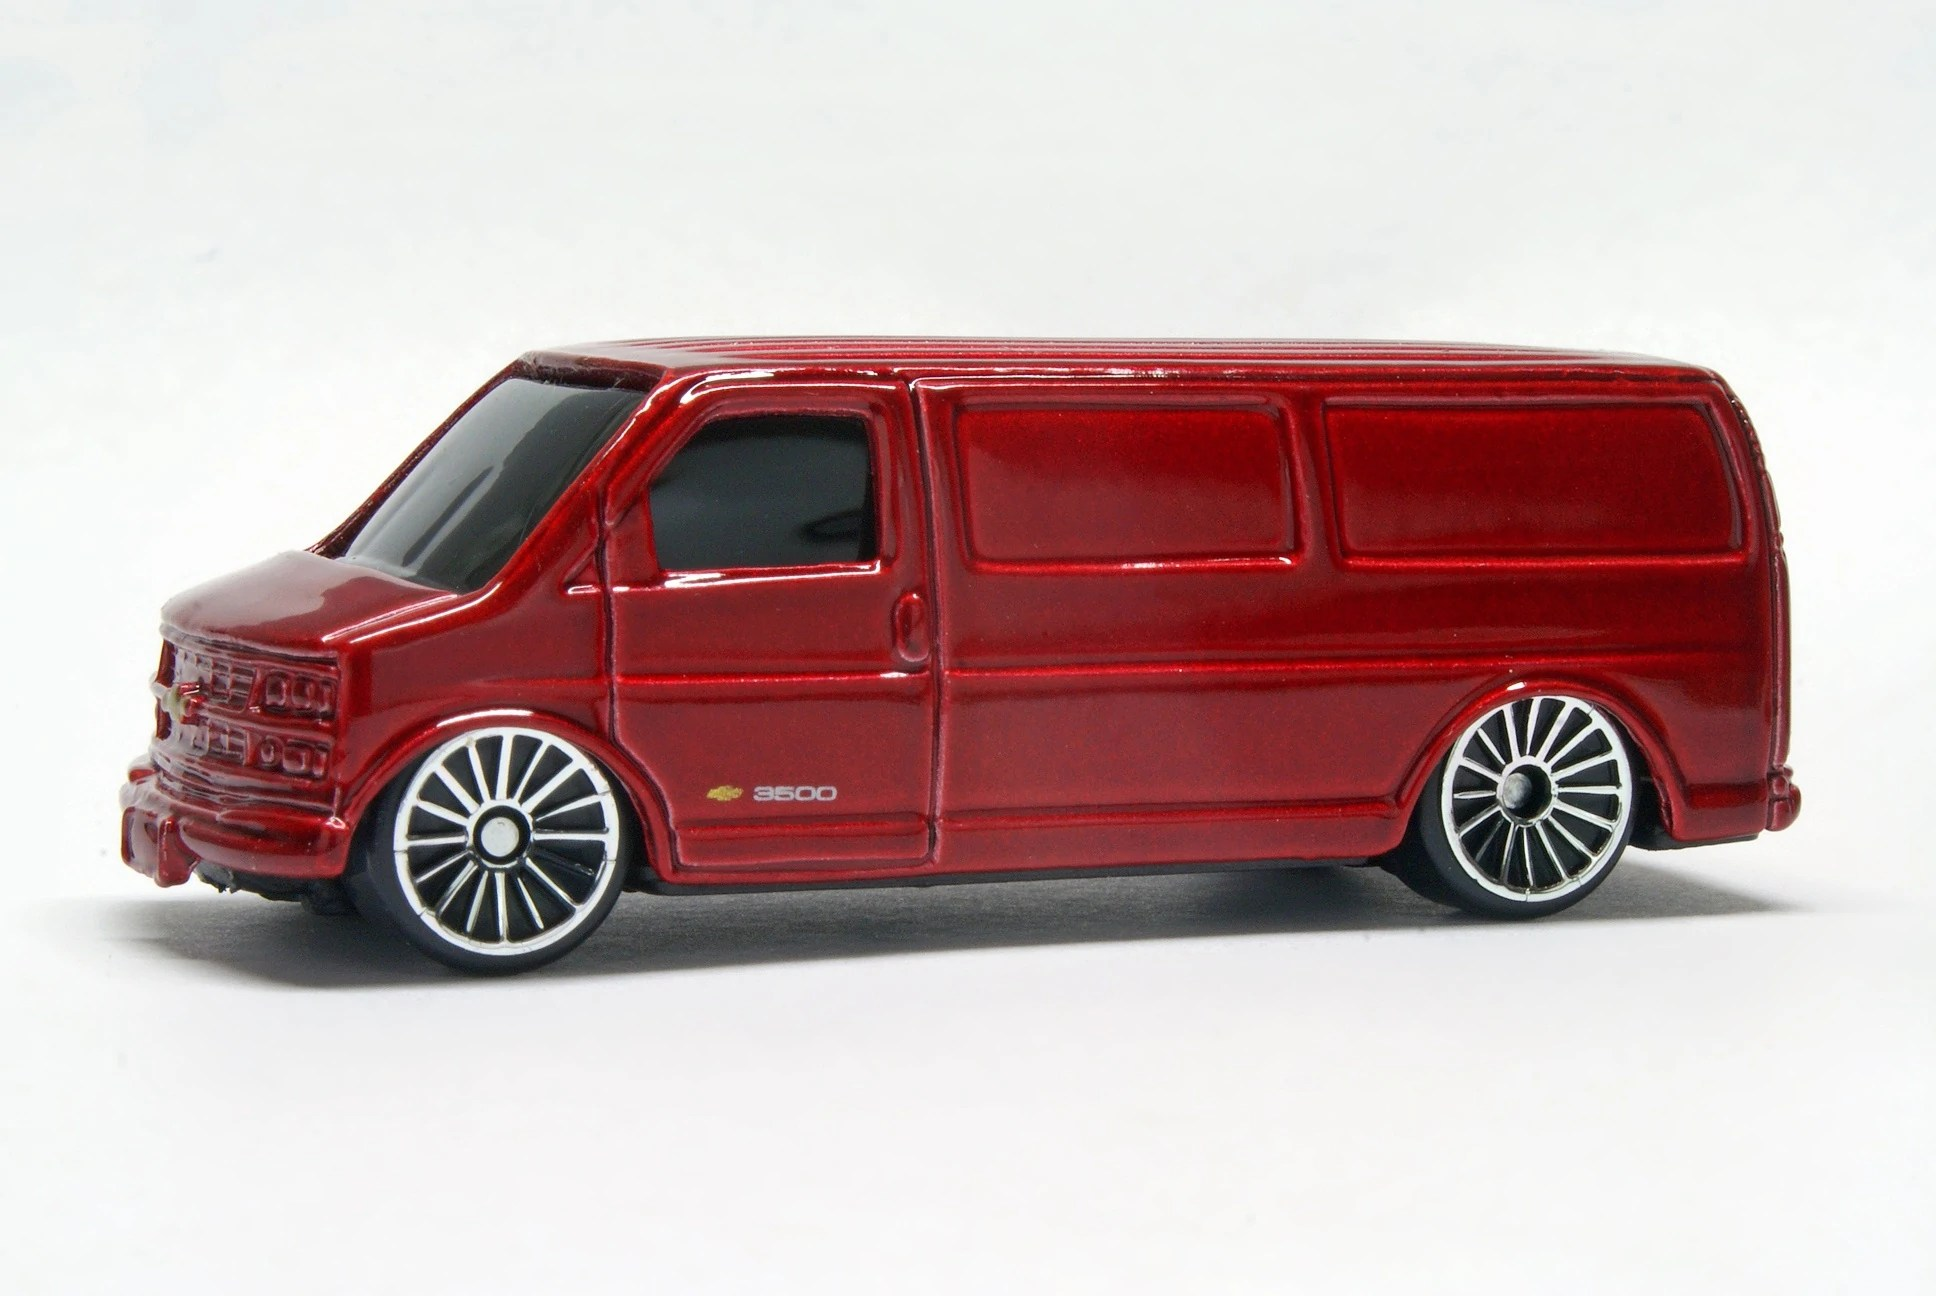 hight resolution of 2000 chevy express van